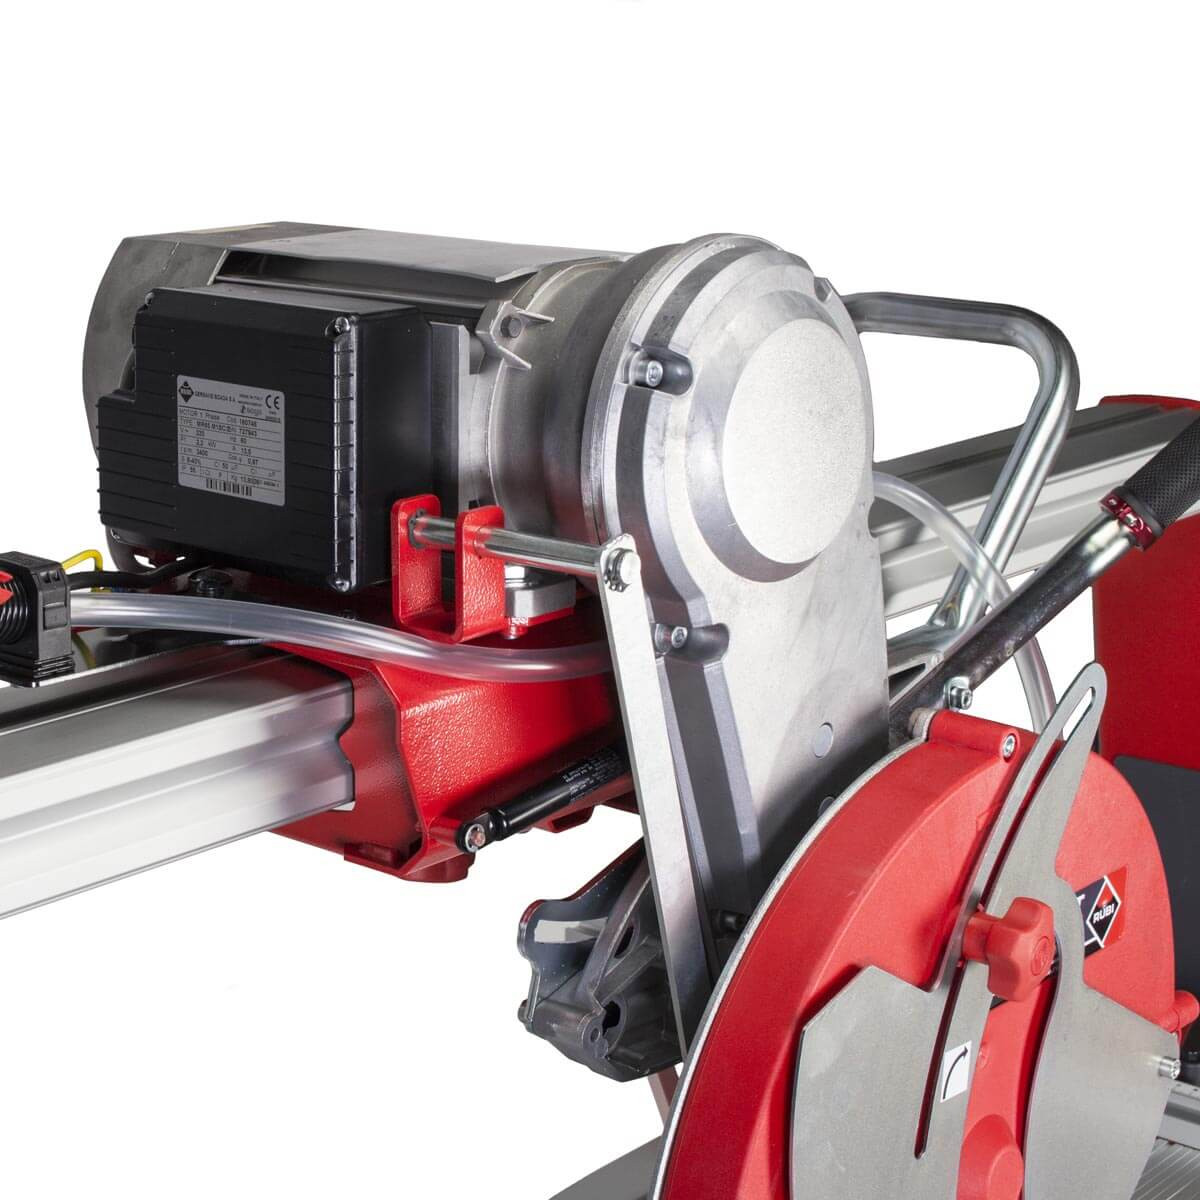 52918 Rubi DX-350-N 1300 rail saw